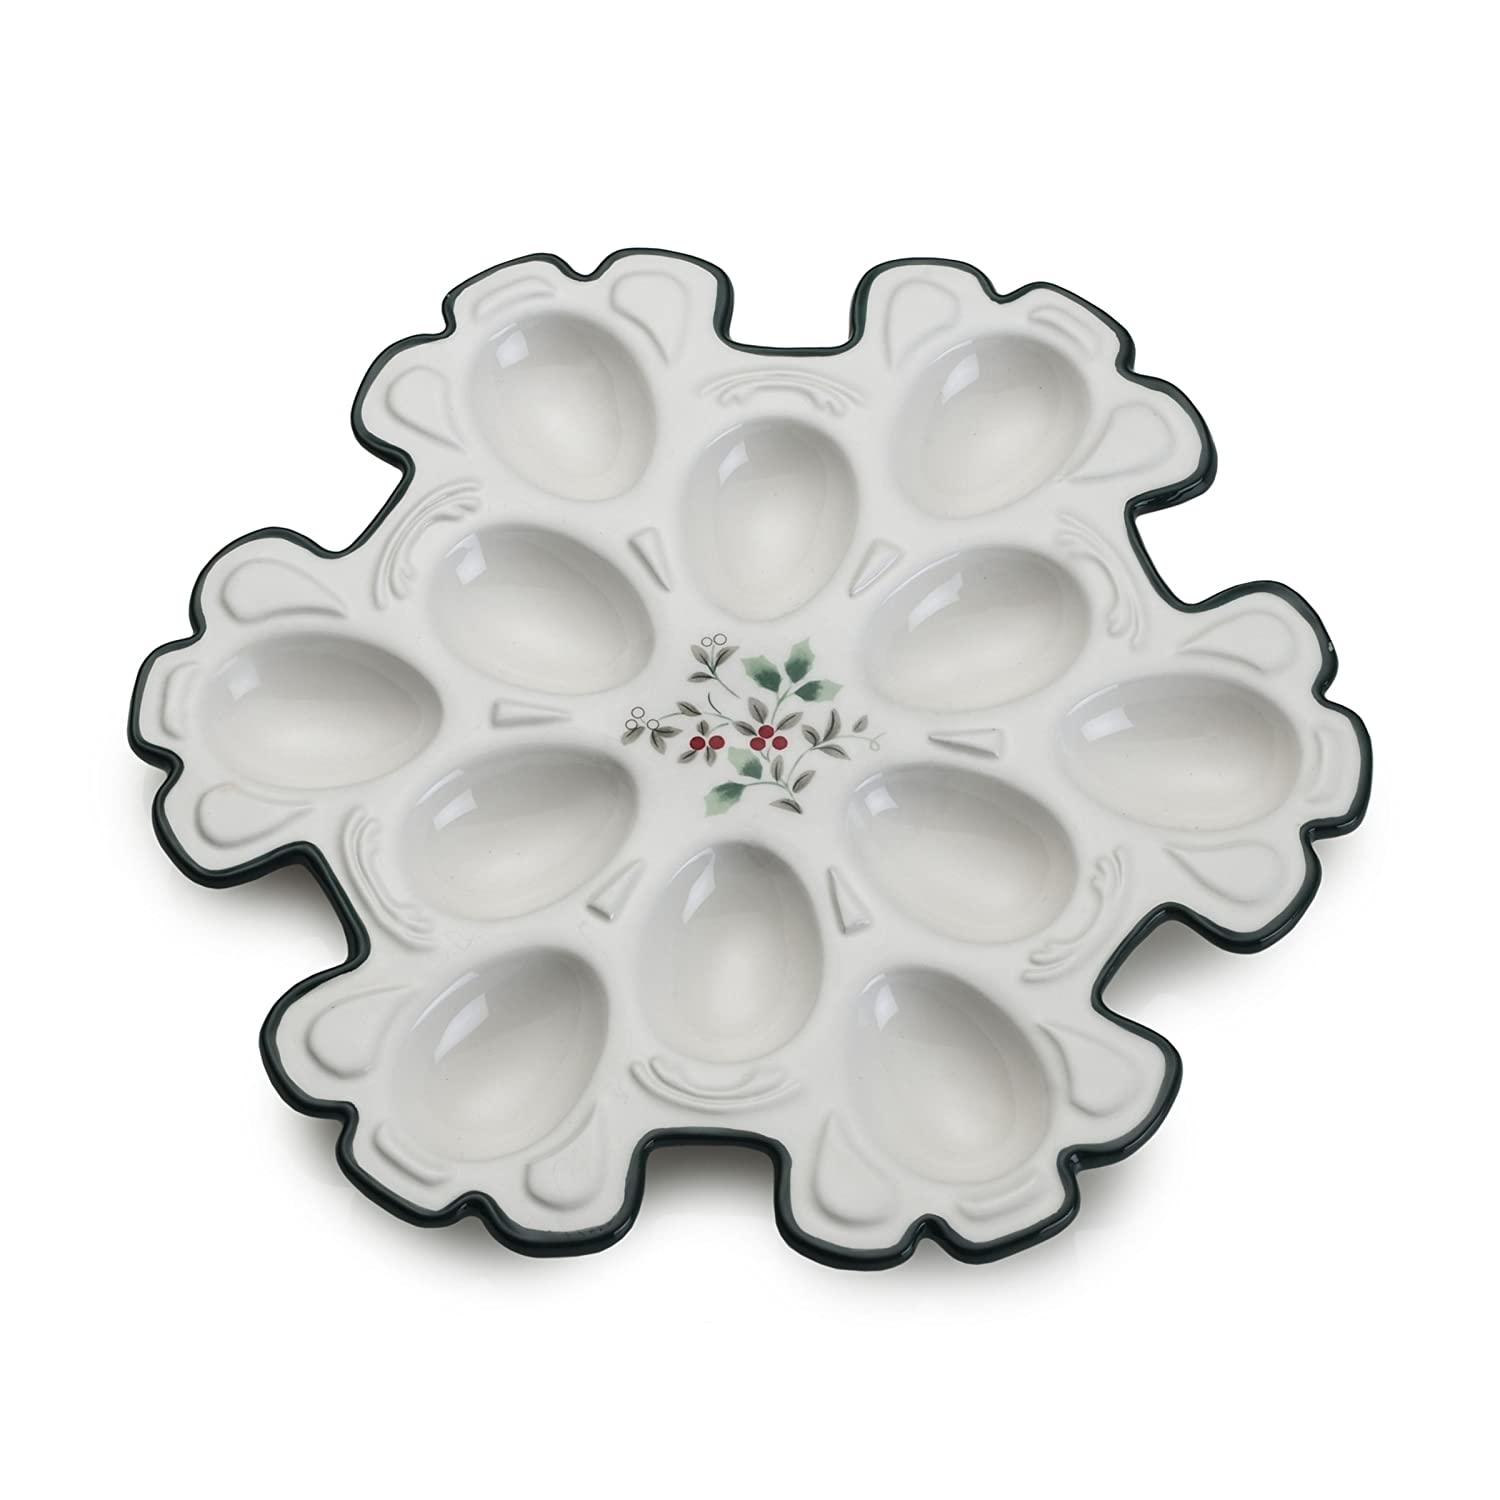 Includes 8 Deviled Egg 12 Diameter Presence Serving Trays Green Magenta Perfect for Any Party or Social Gathering and Orange Black Duck Brand Includes Blue